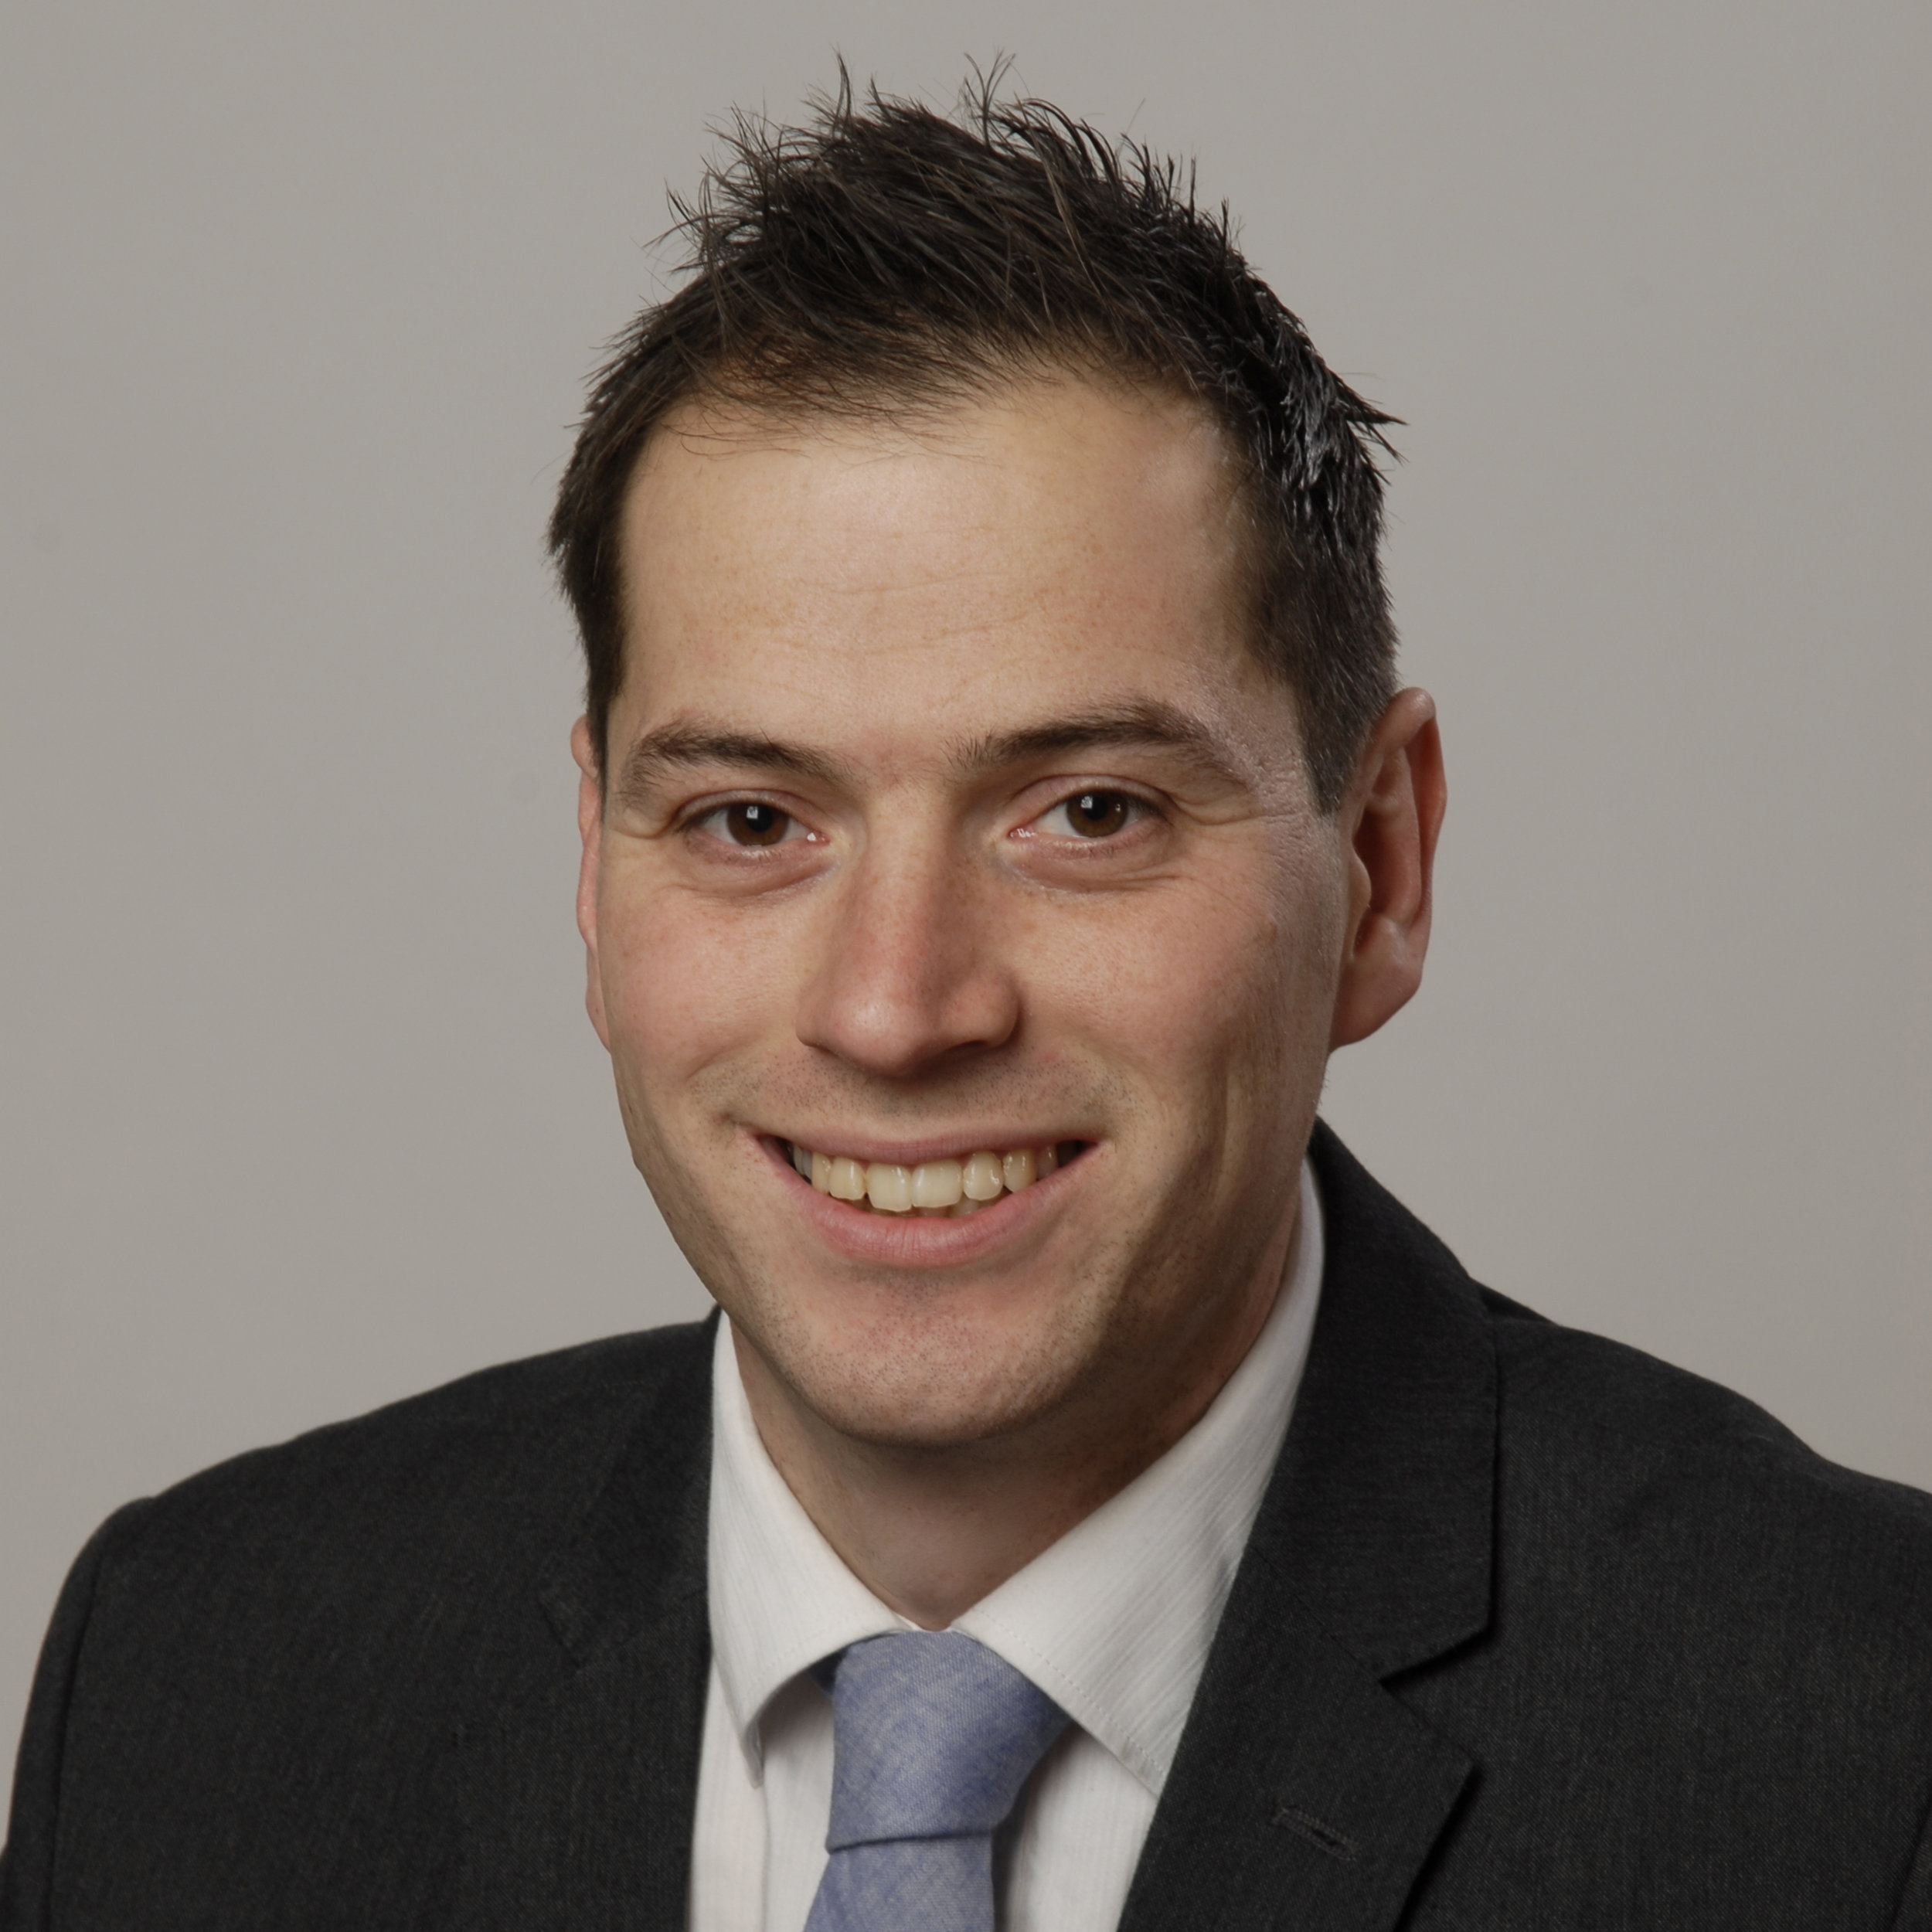 Jason Witherspoon DipFA - Jason has over 13 years experience in financial services. He has worked for the CIS as a financial adviser and Blufin (Axa Wealth) as an Independent Financial adviser, he joined Jamesmith Financial Services Ltd as their youngest advisers in 2009 advising clients in all aspects of financial products including Pensions and investments.He headed up the Mortgage Advice desk with in Jamesmith Financial Services Ltd and maintained all their I.T requirements.Jason specialises in giving Retirement advice, from all aspects of investments to Pensions. He also Heads up the Mortgage Advice desk here at Amber Solutions Financial Planning LLP.As a Partner at Amber Solutions Financial Planning, amongst advising and looking after his client, he is responsible for the I.T Department and other regulated activities.Jason has a young family with his Wife who also works as a Para Planner with in the Firm, he enjoys playing and watching football following the Swans in their ups and down, also an avid Cardiff Devils supporter. As a family, they enjoy as much time as a family together as possible.· Pension Advice· Investment Advice· Protection Advice· Mortgage Advice· Wills and Estate Planning